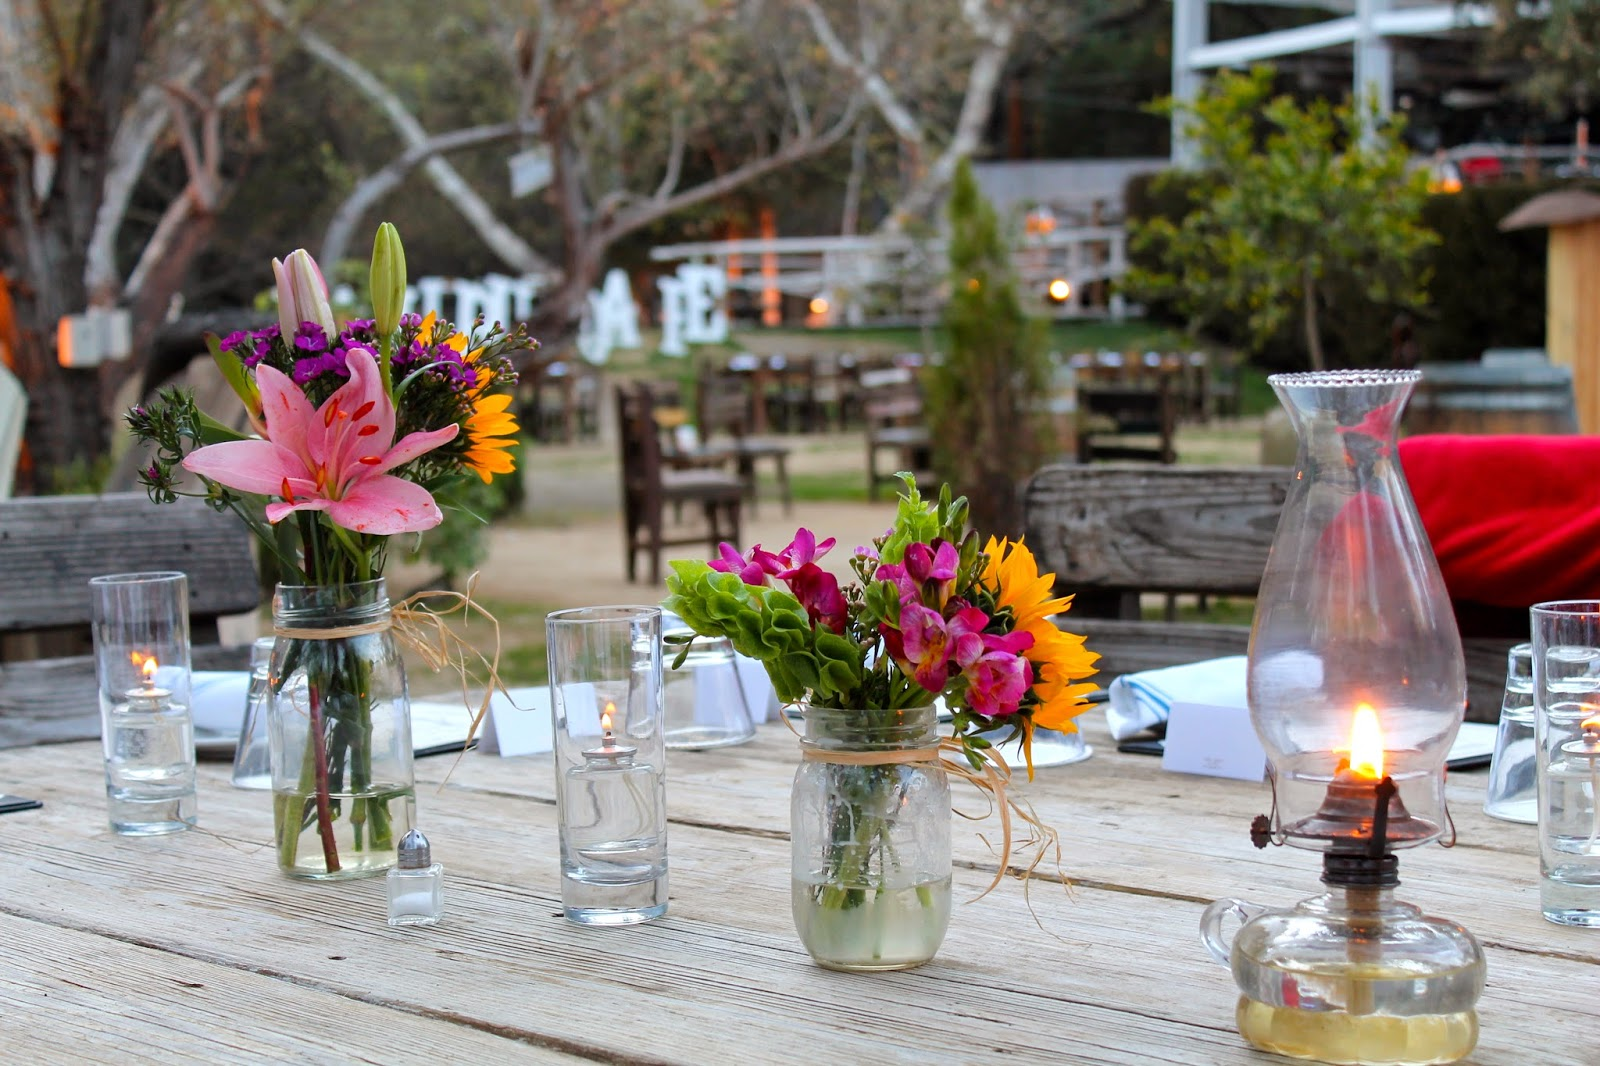 Malibu Cafe Flowers Candles Table Decor